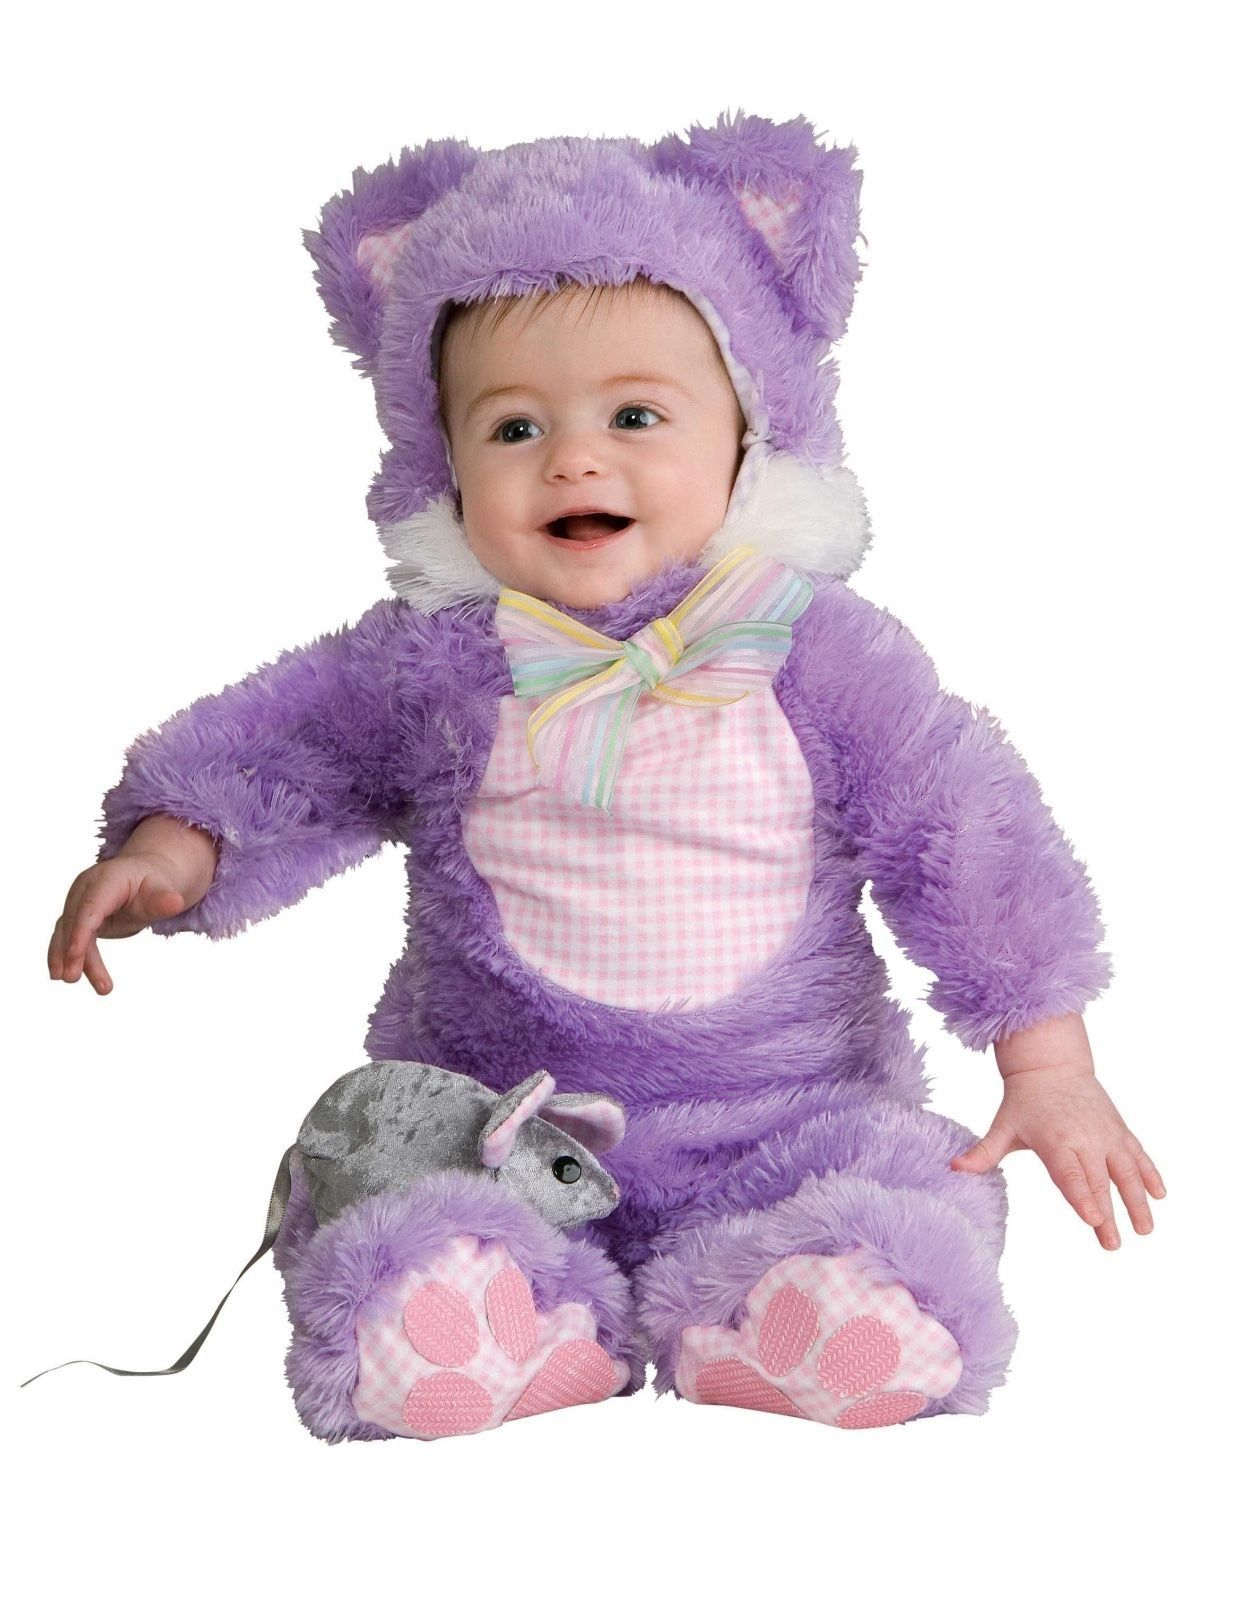 Image 2 of Adorable Plush Inky Black Cat or Purple 885706 Infant Costume Rubies 6-18M